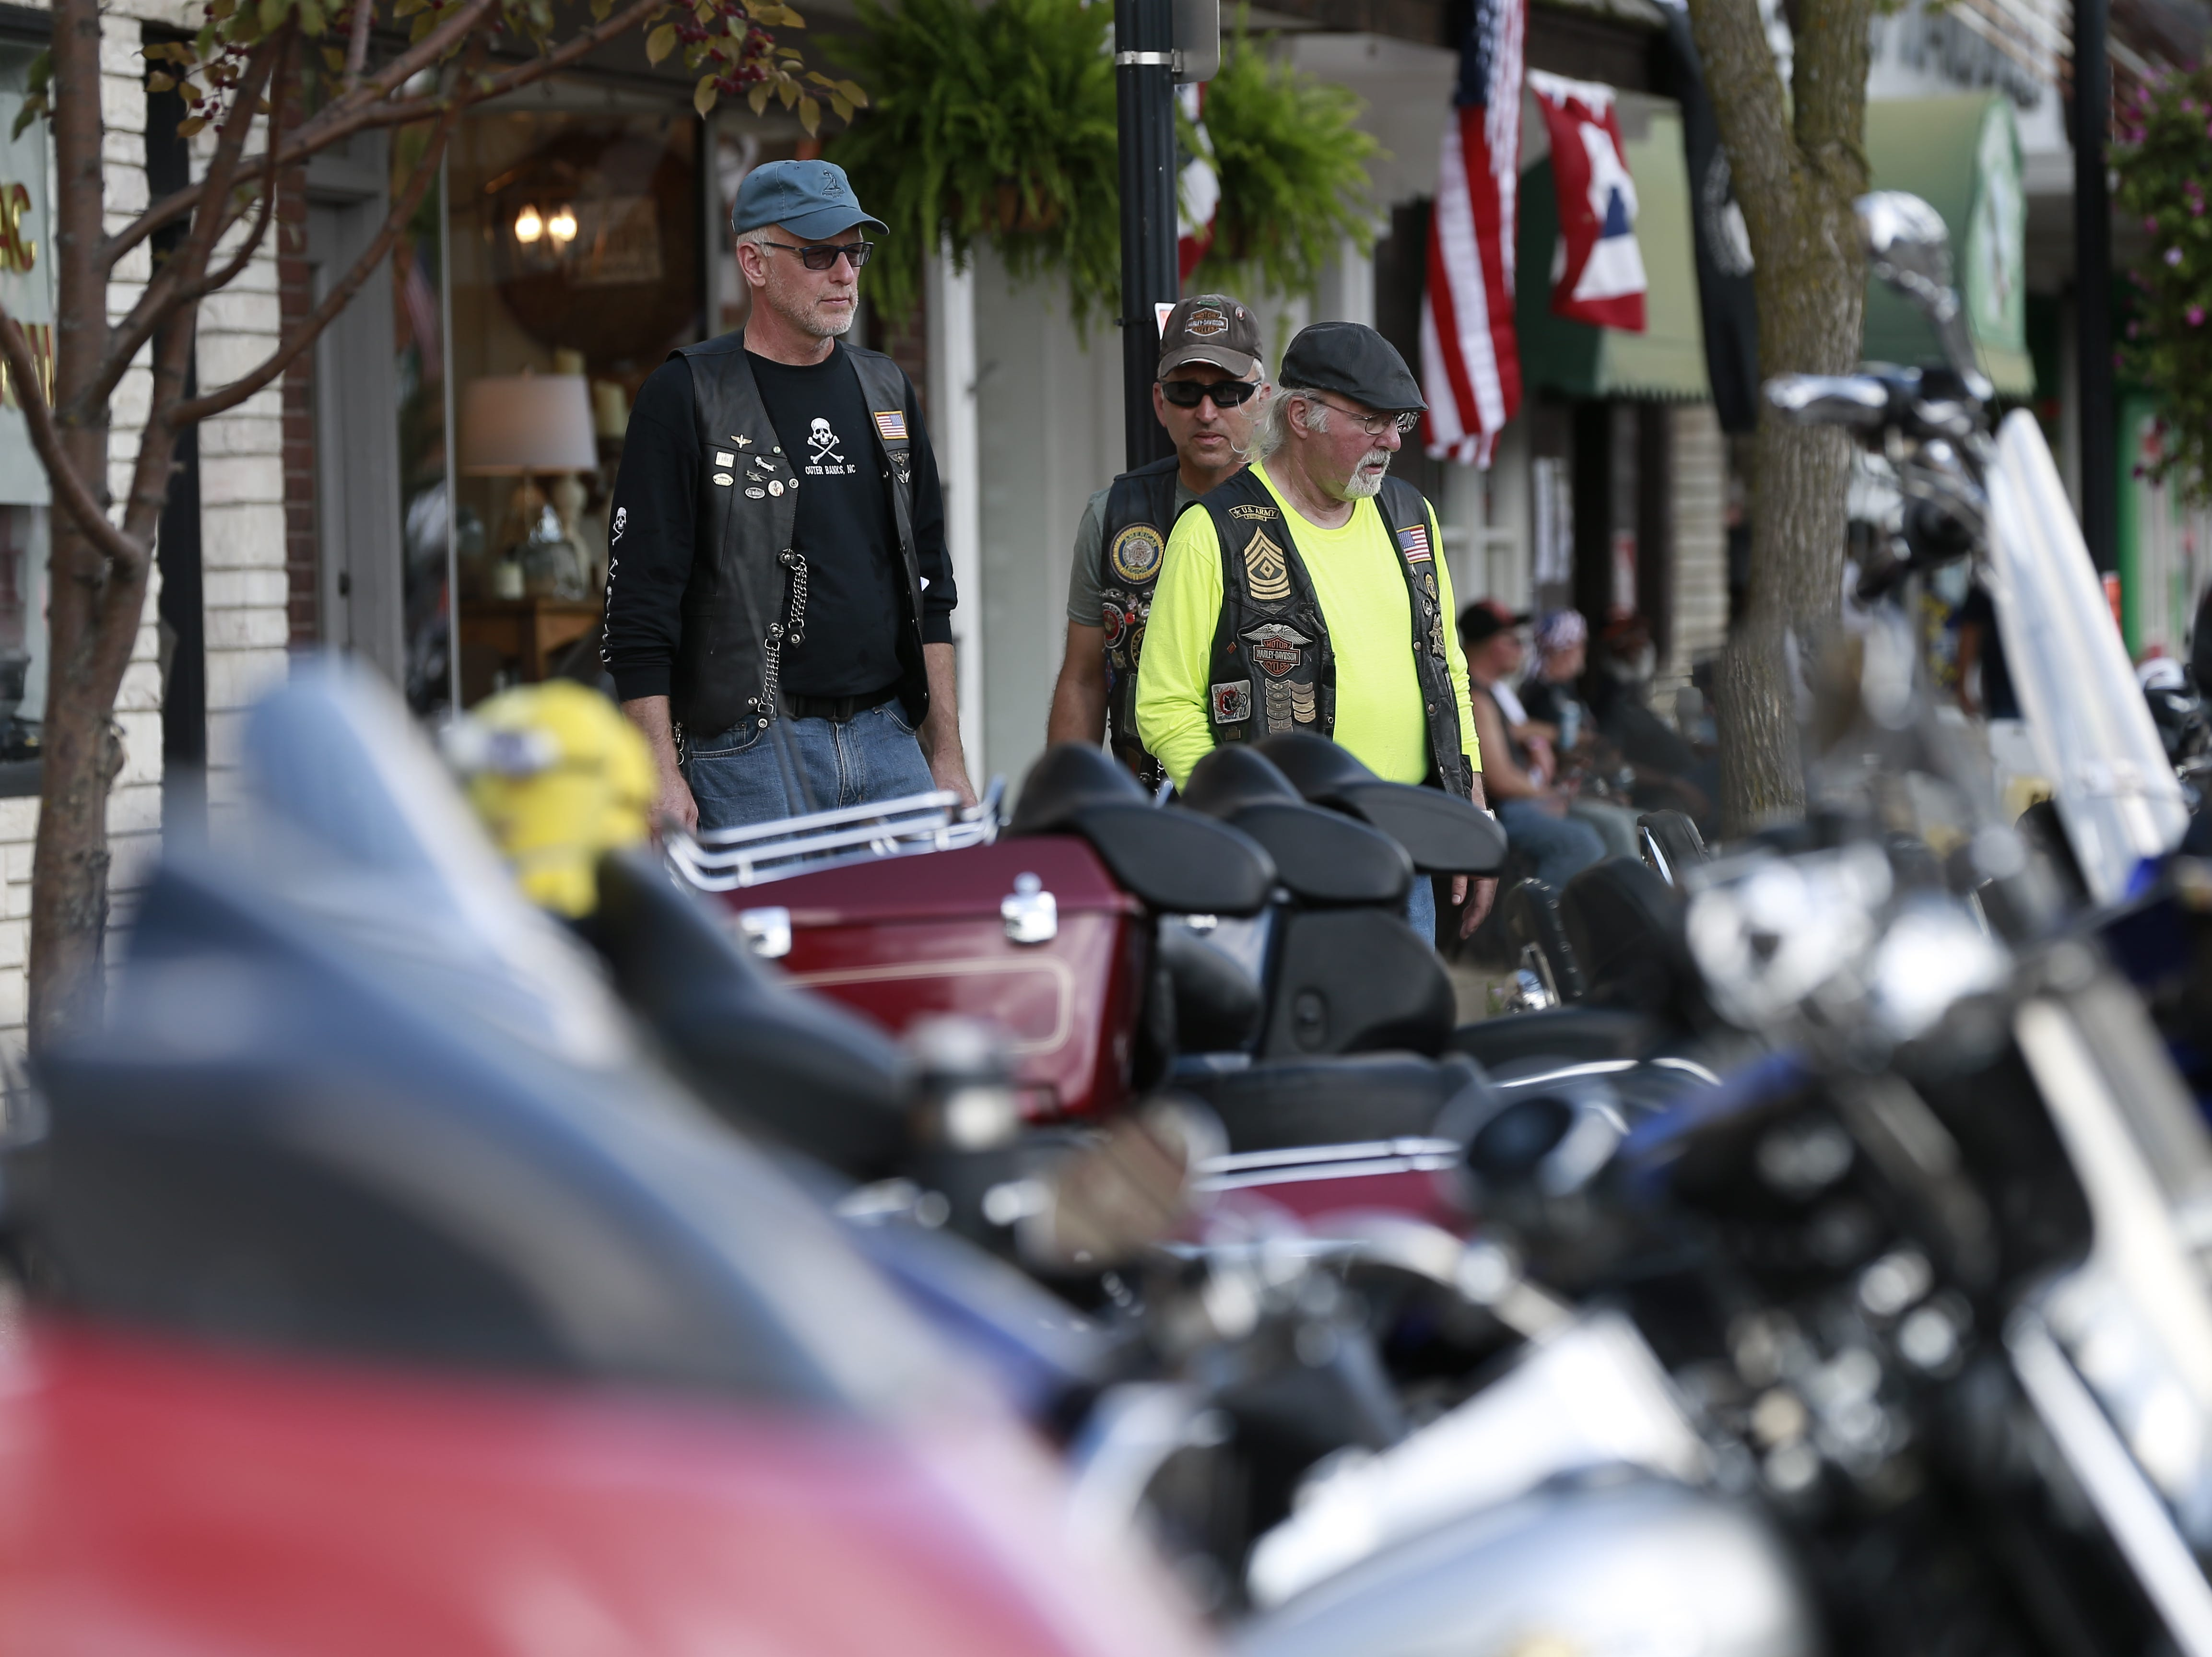 Bikers look on motorcycles during the 37th Annual Tomahawk Fall Ride Friday, Sept. 14, 2018, at downtown Tomahawk, Wis. T'xer Zhon Kha/USA TODAY NETWORK-Wisconsin